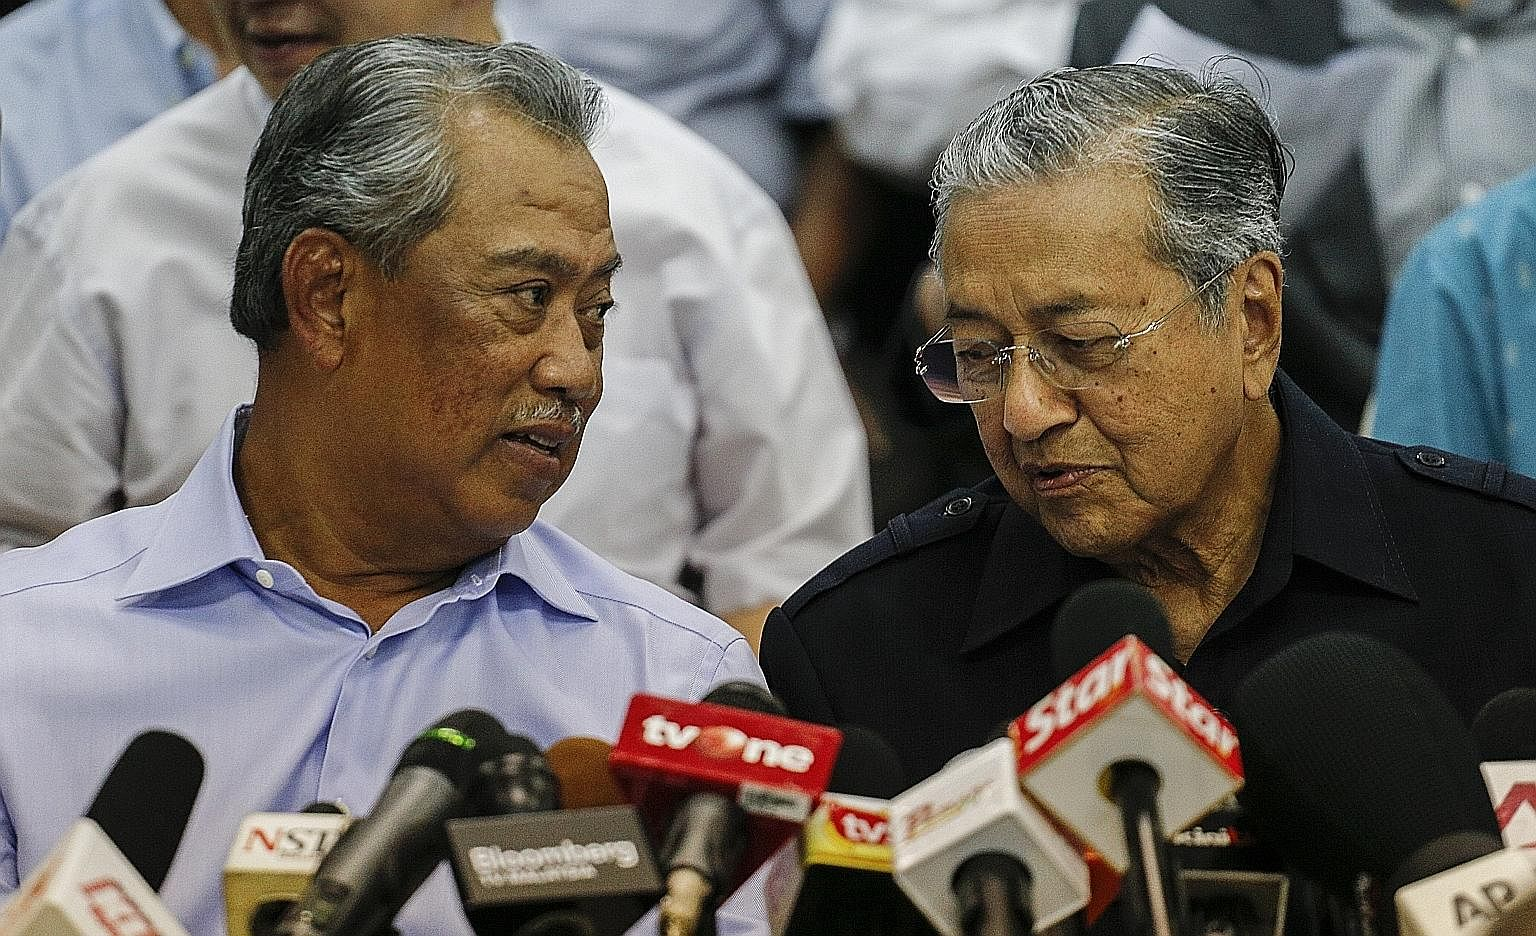 Dr Mahathir (right) with Tan Sri Muhyiddin at a media event in March. Dr Mahathir's move to force a change of leadership from outside Umno shows he no longer has clout within the ruling party. But it is not known what position Mr Muhyiddin, Umno's fo